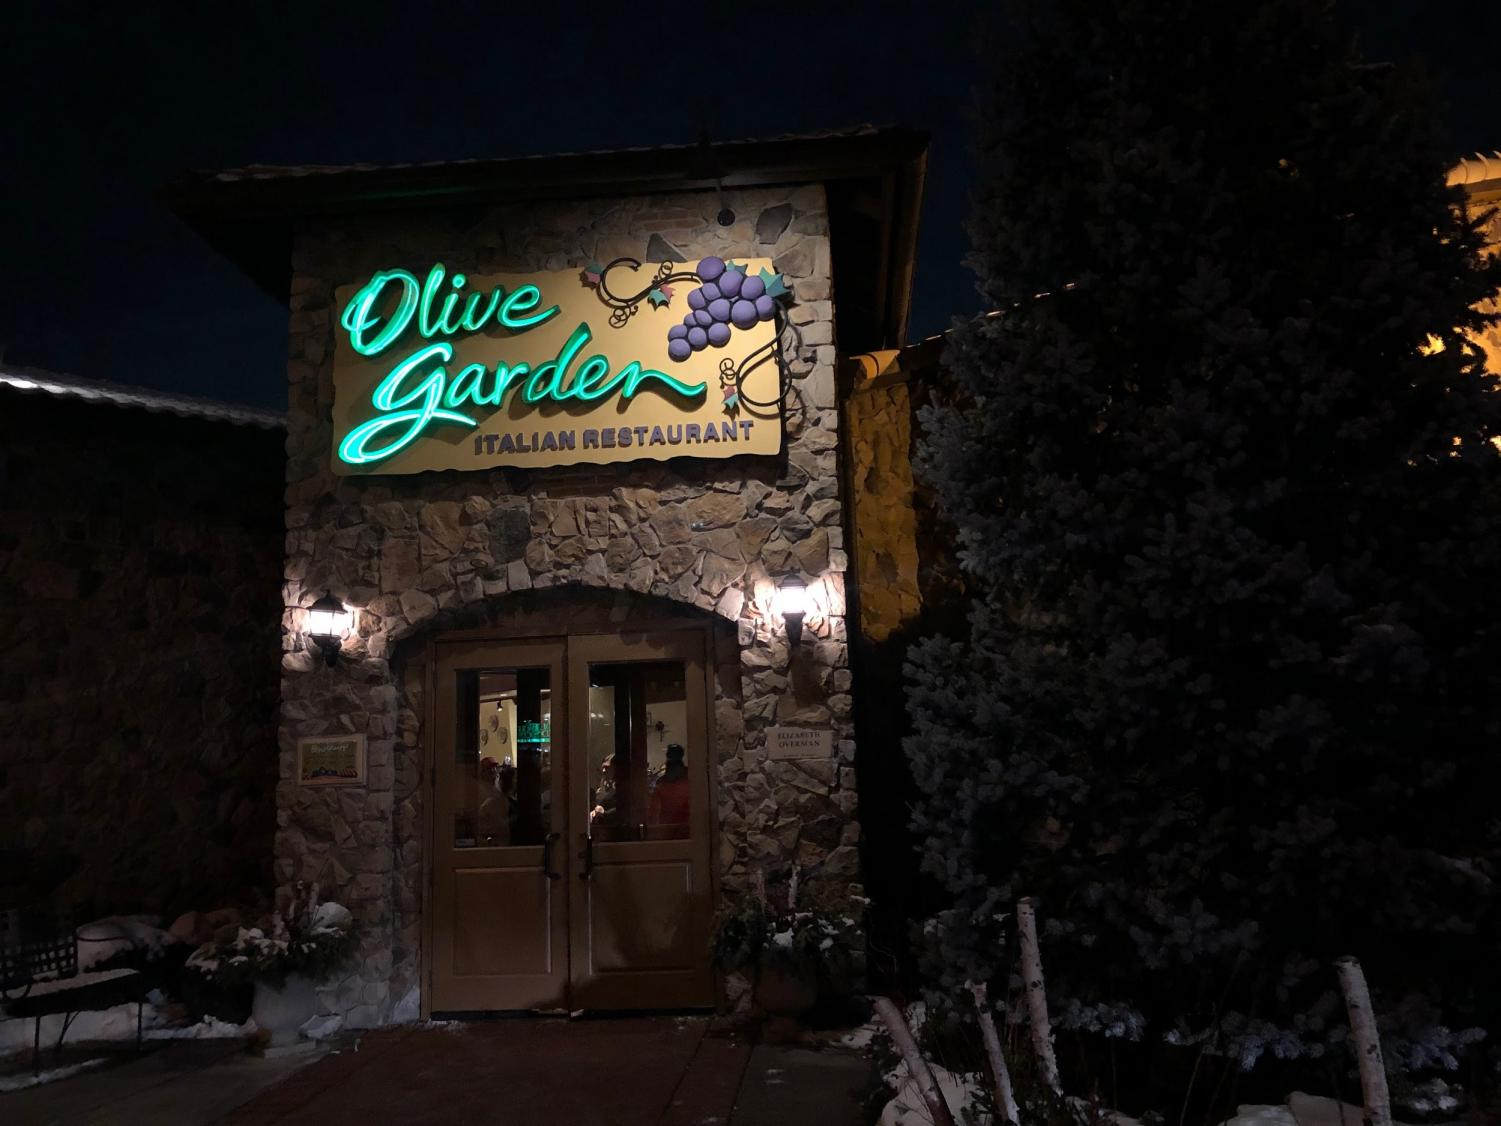 This family-style restaurant is located in Orland Park on 152nd St. and Lagrange Rd. It's conveniently located by Orland Square Mall, making it an easy go-to dinner spot after a long day of shopping.